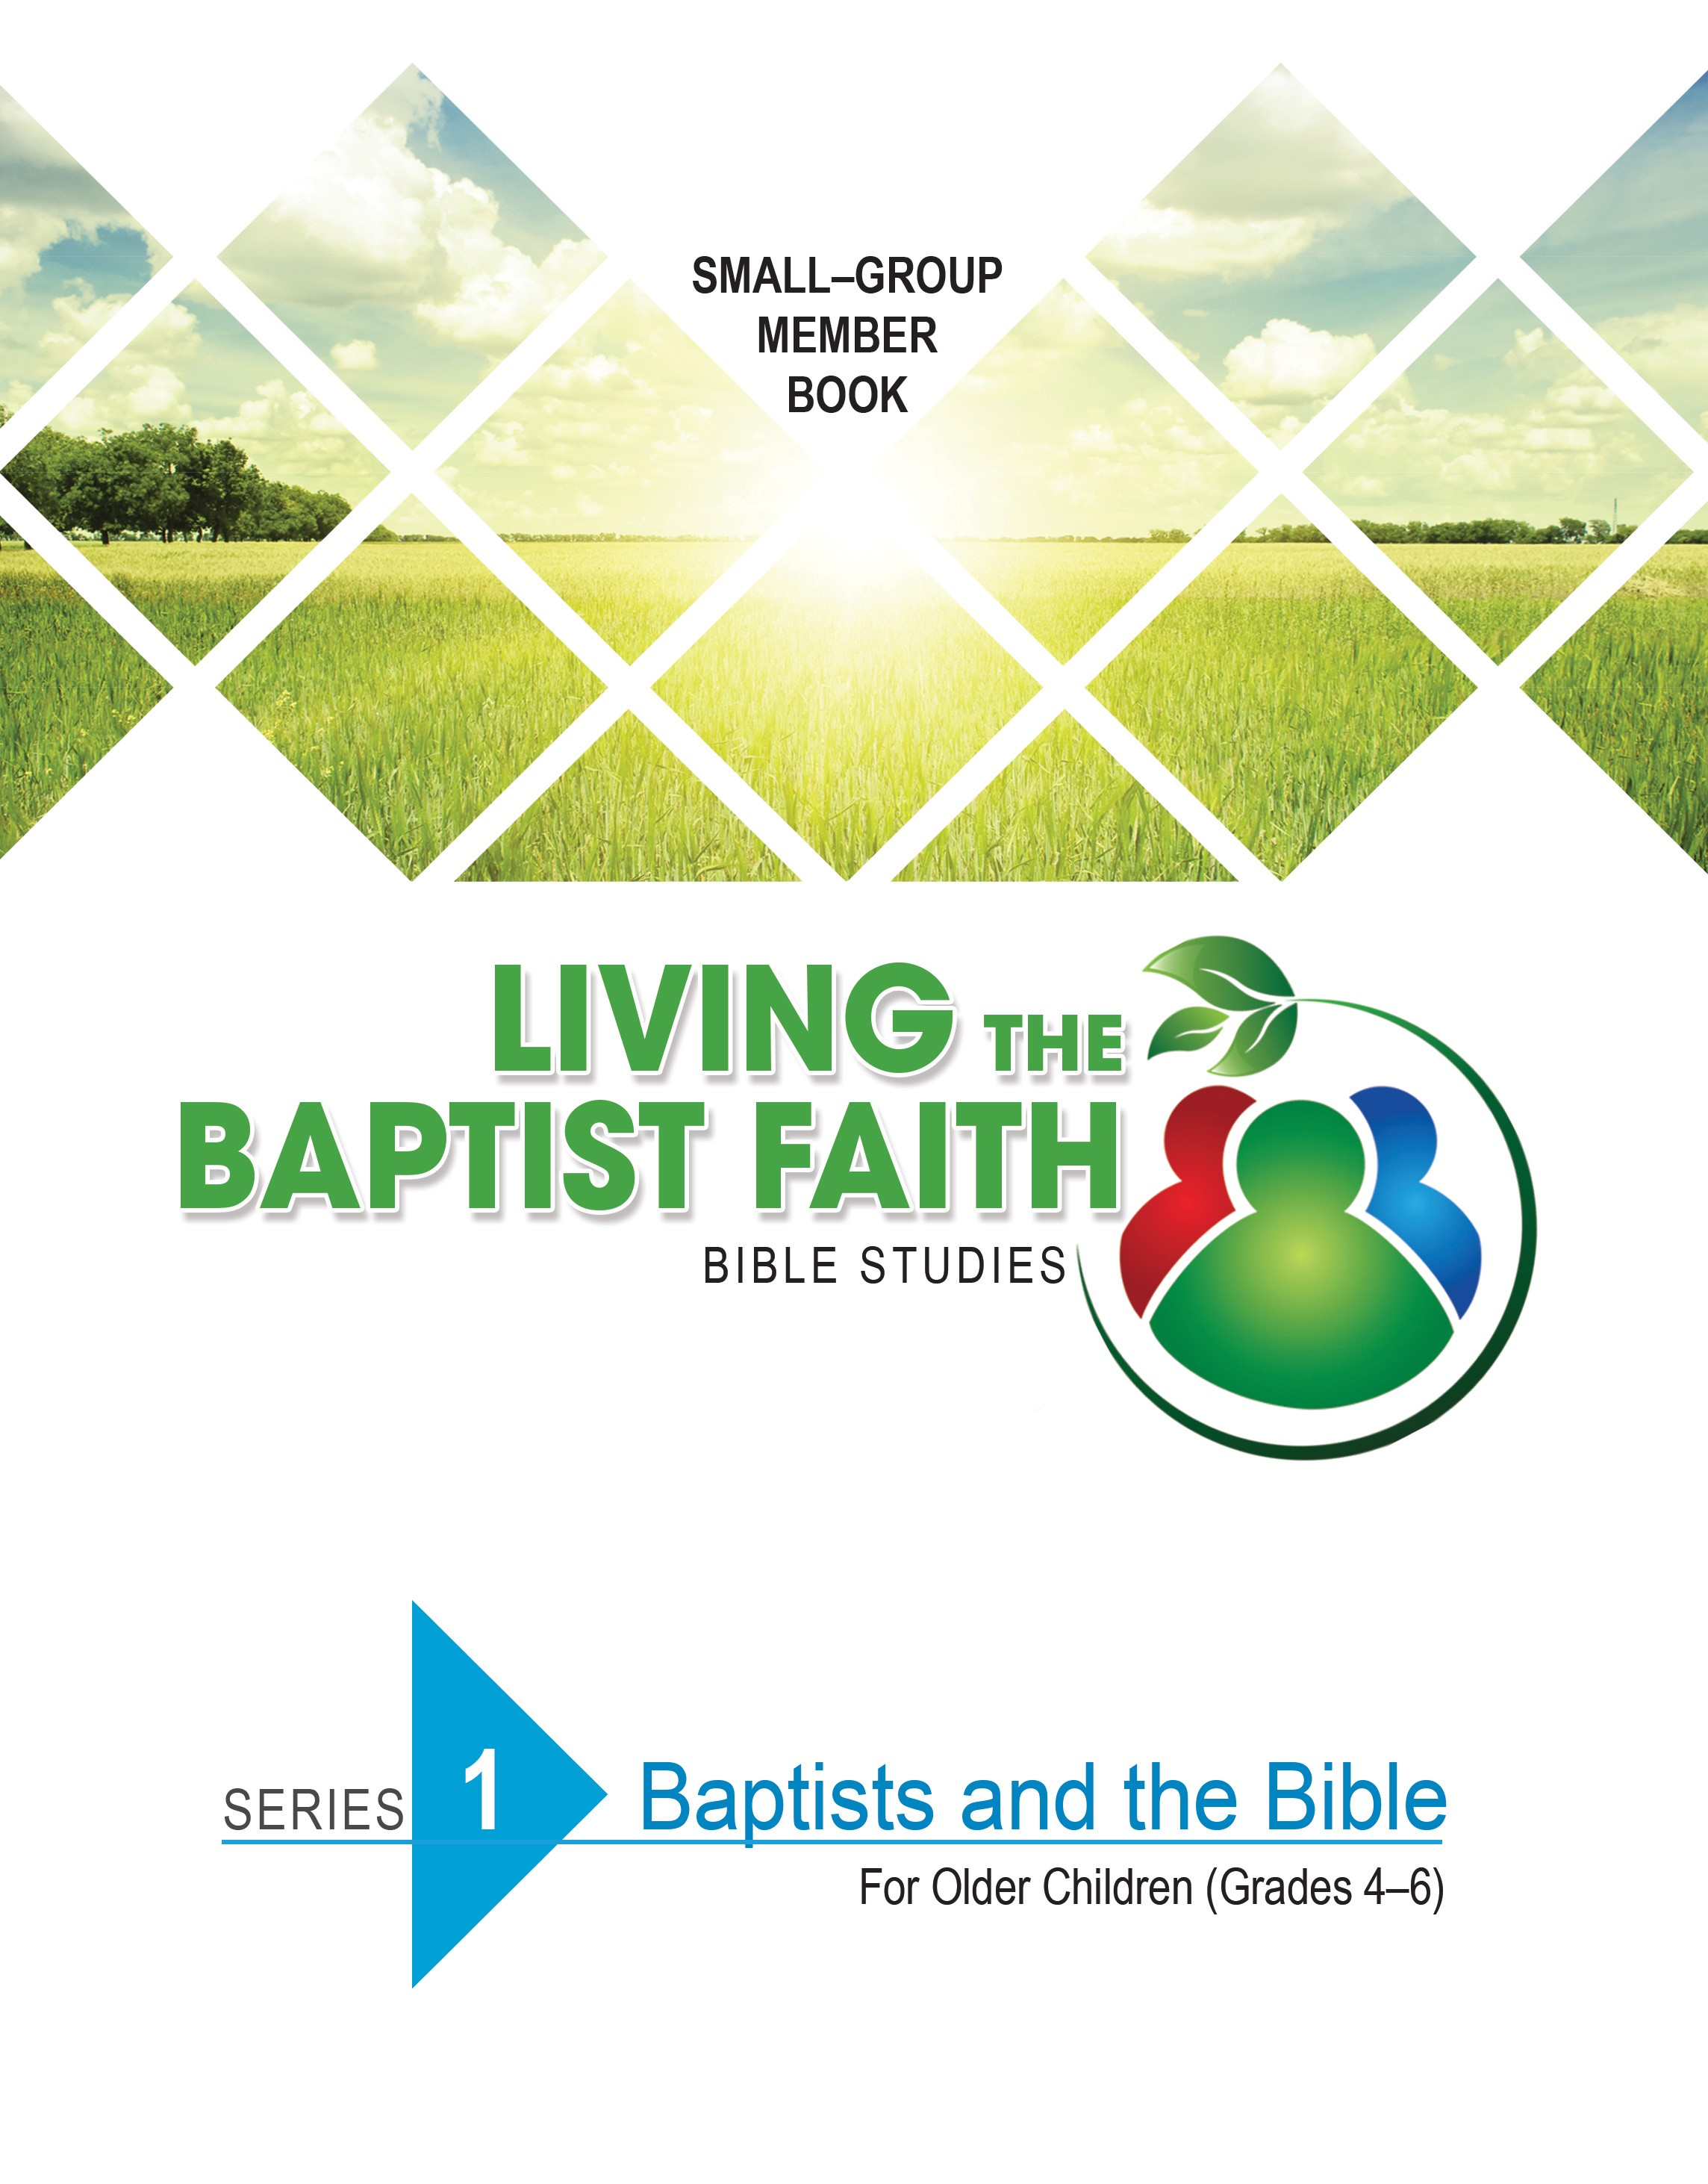 Series 1: Baptist and the Bible (for Older Children)